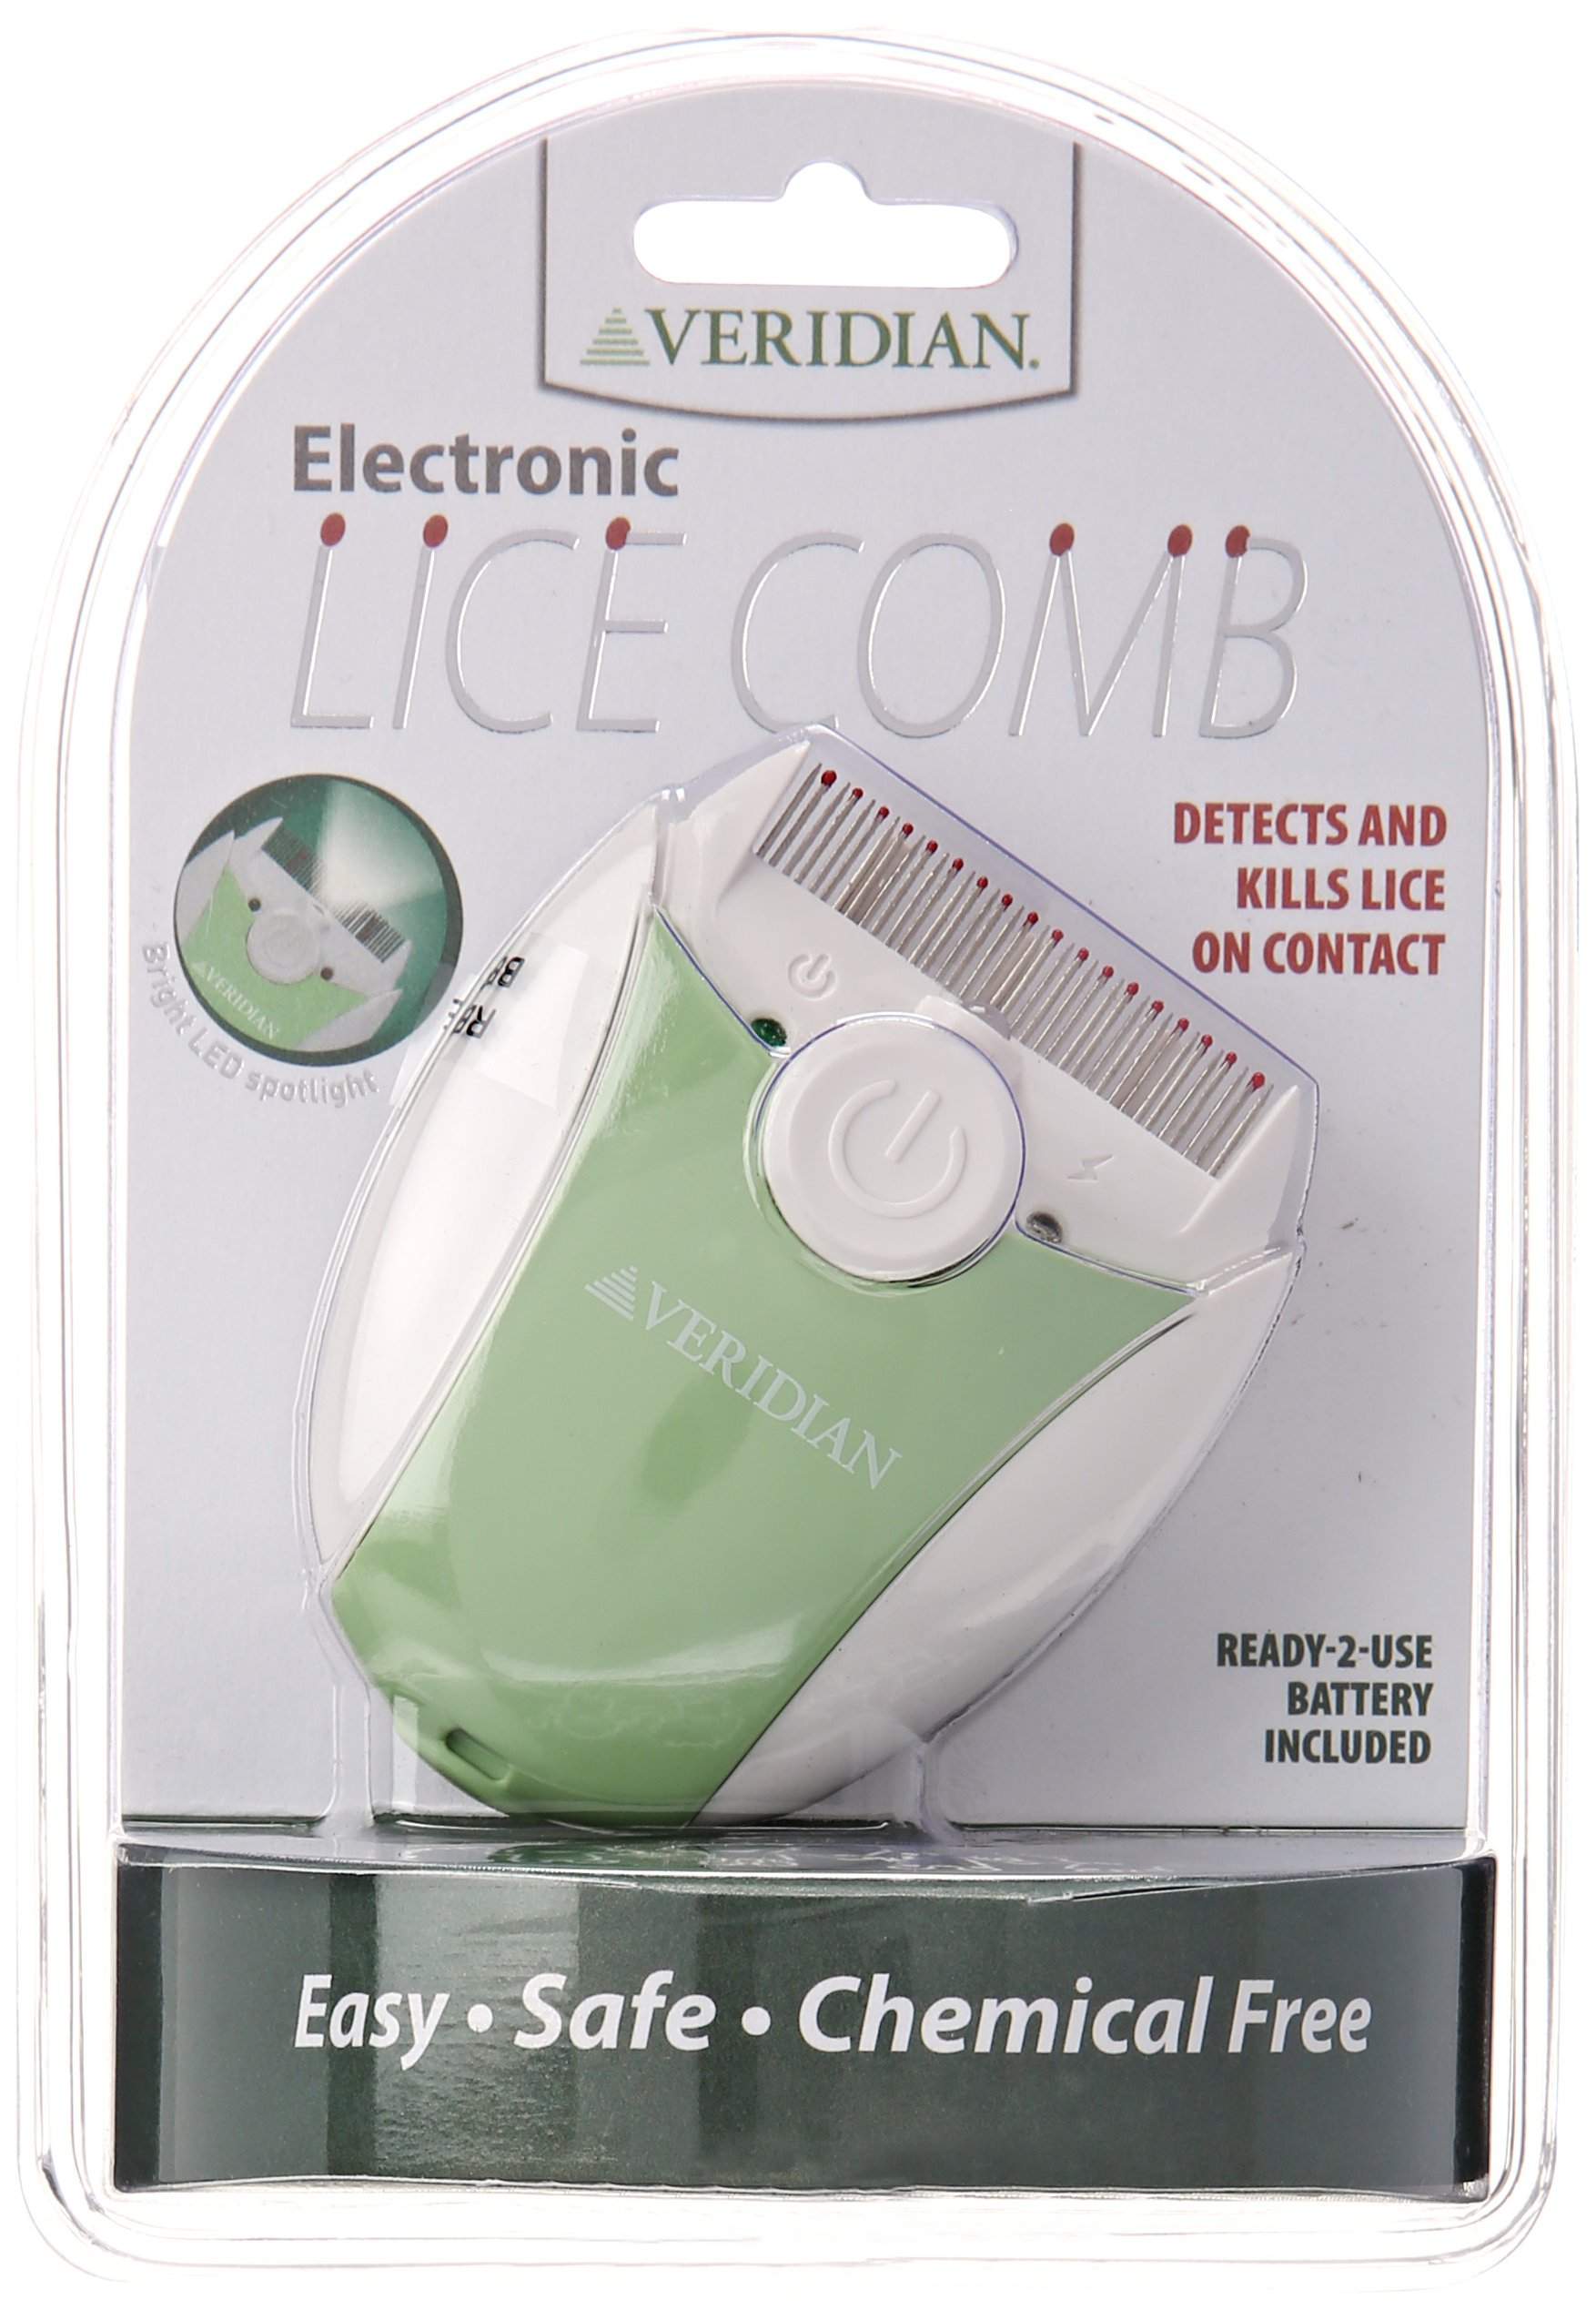 Veridian Healthcare Finito Electronic Lice Comb, Green/White by Veridian Healthcare